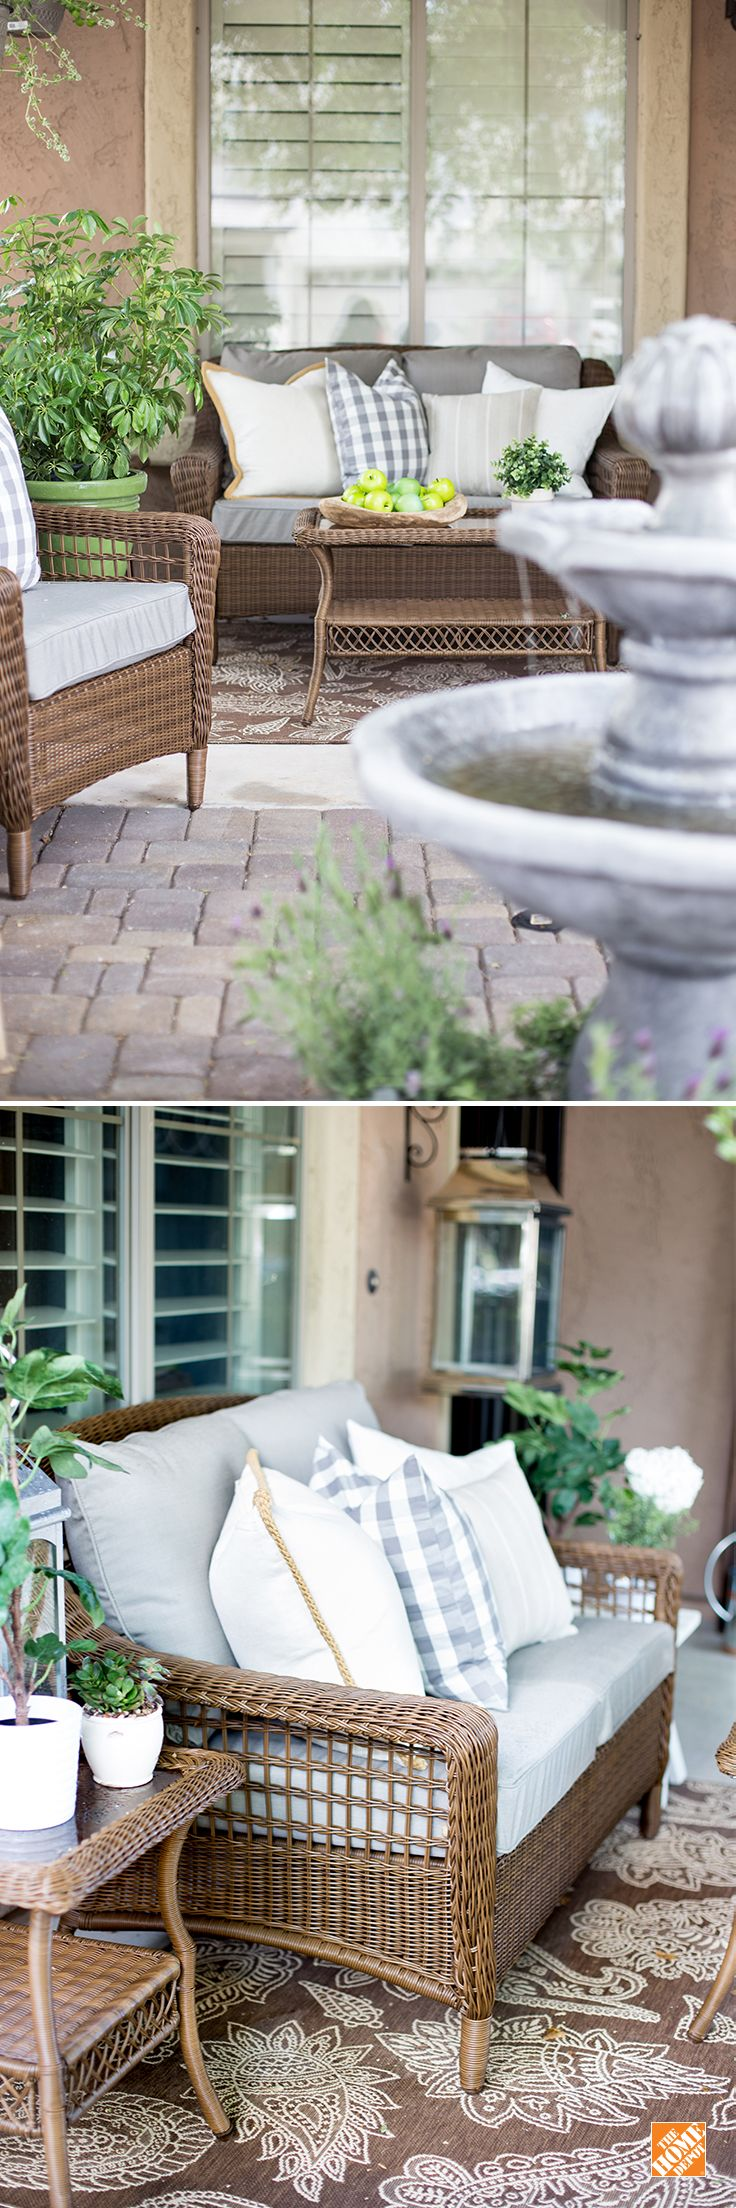 3 Things To Consider When Youu0027re Buying Patio Furniture